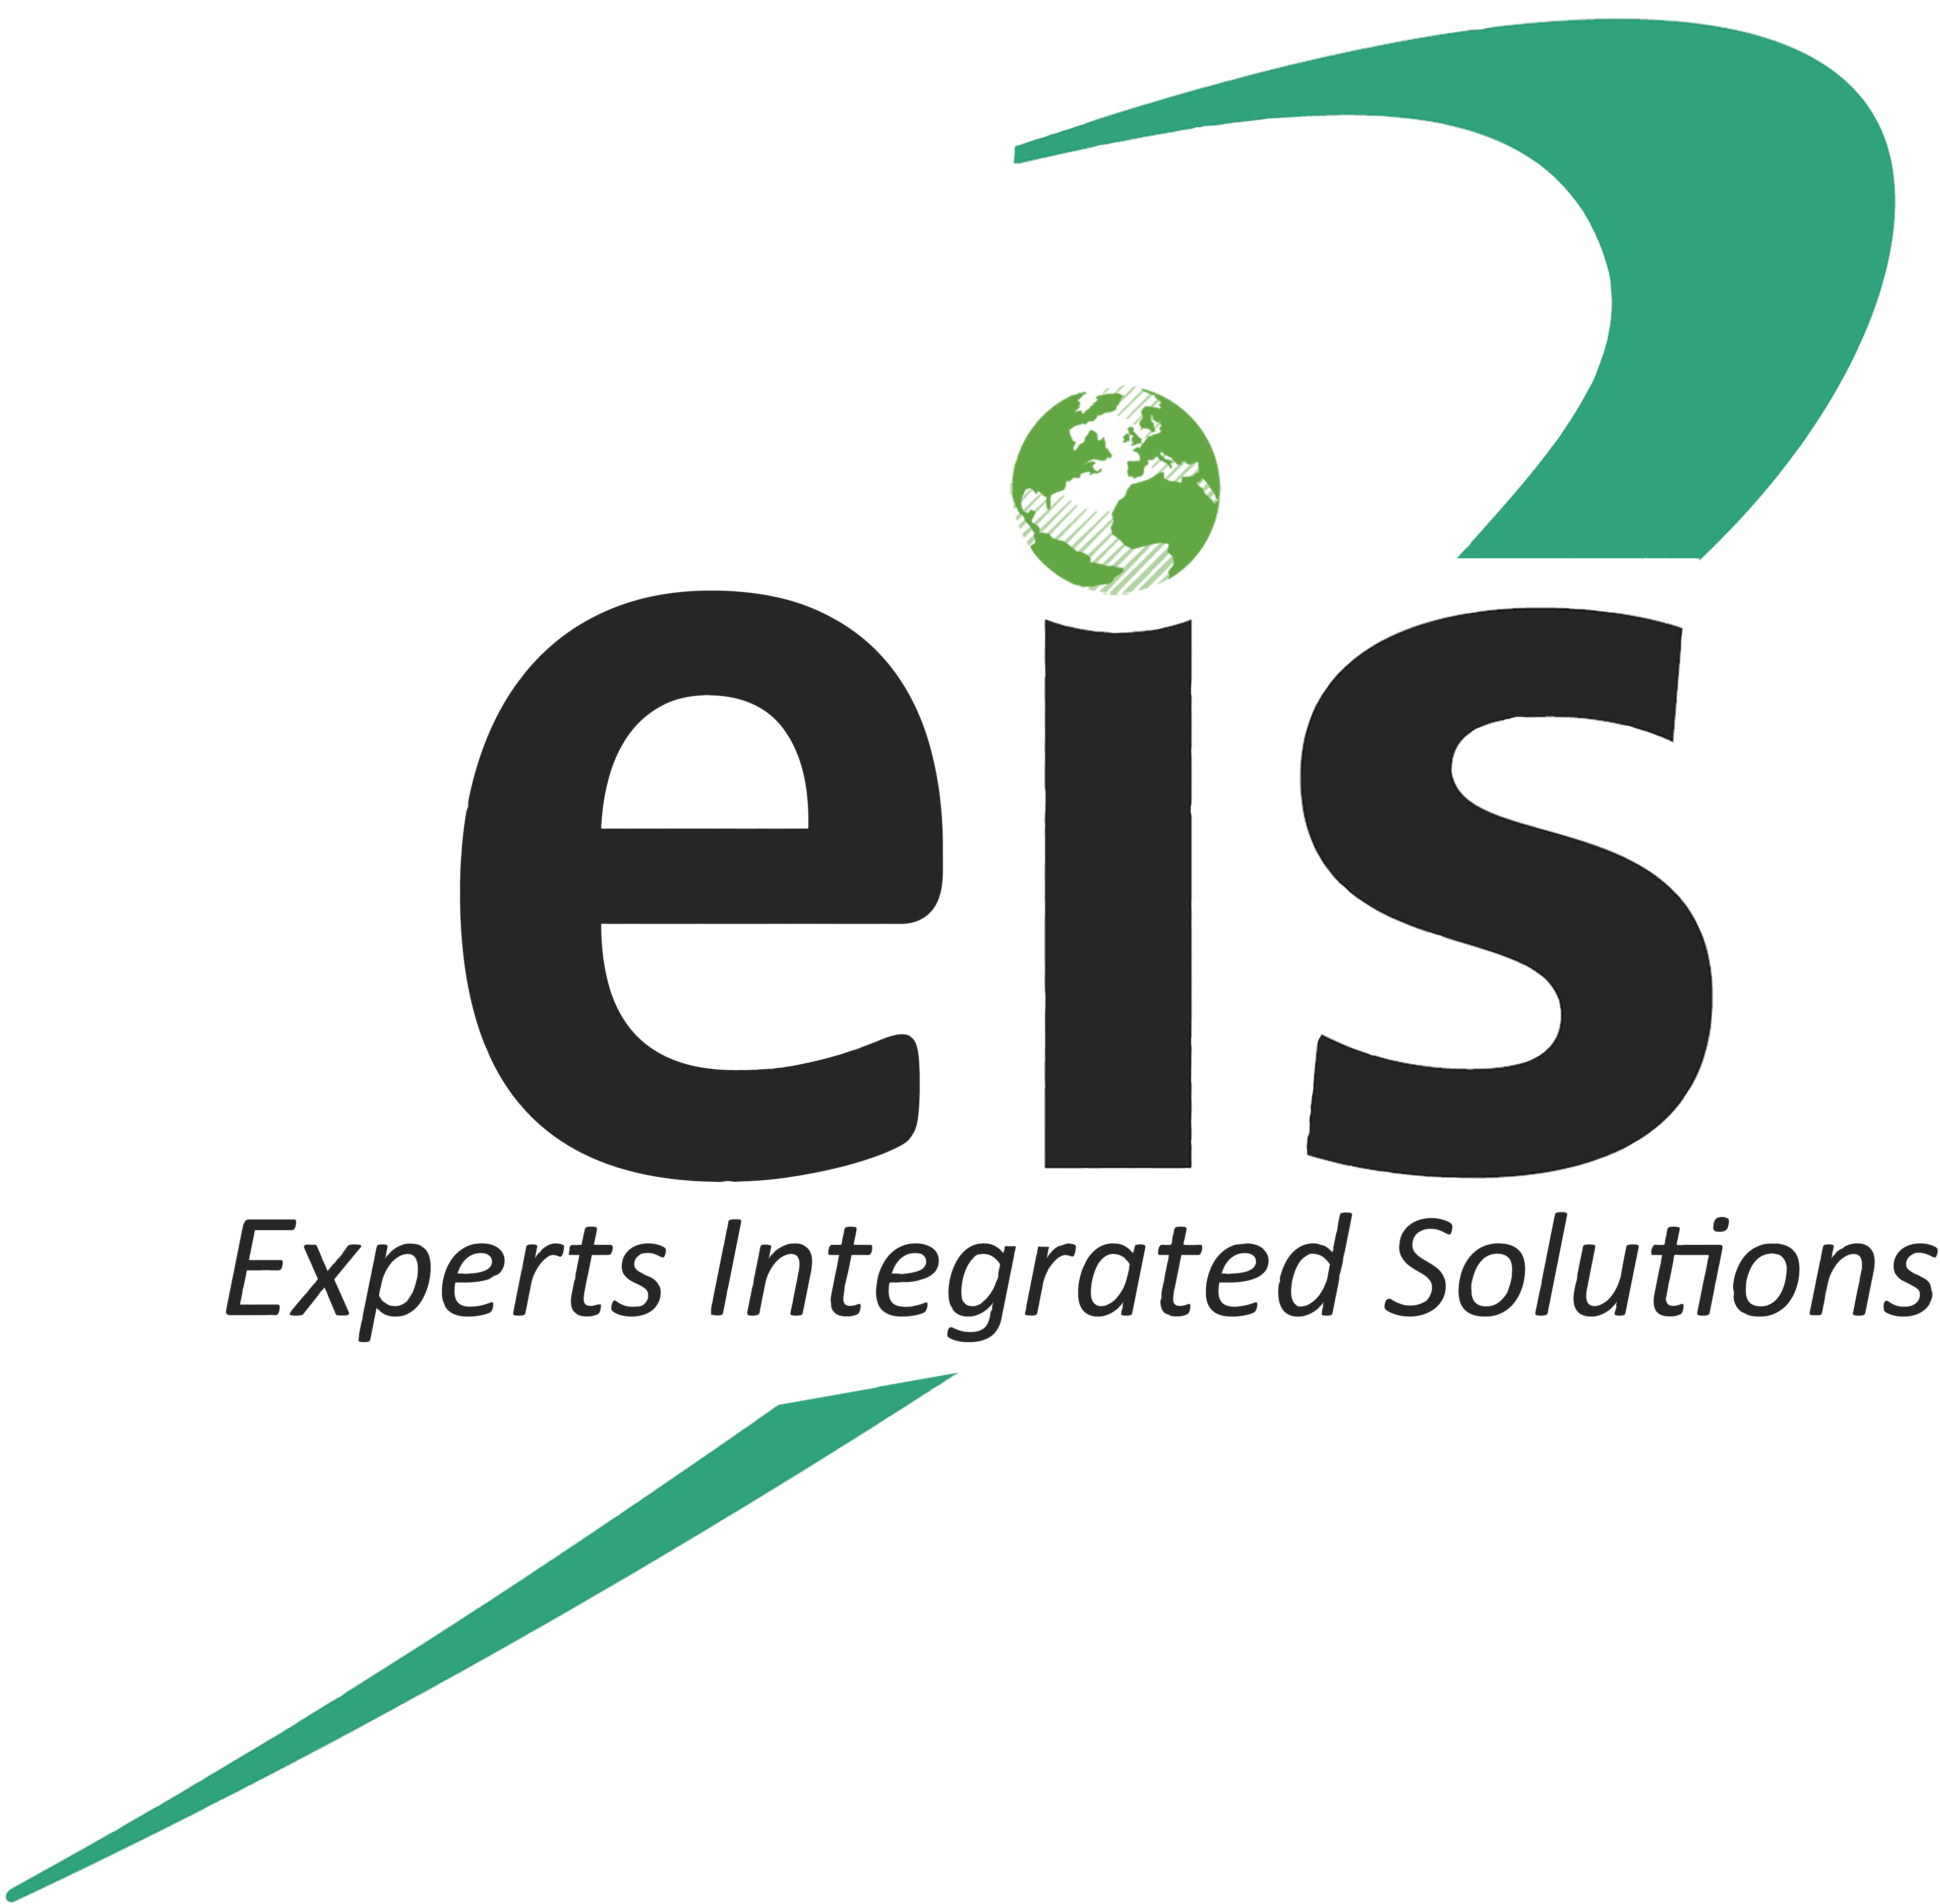 K&M has a Distributor with EIS in Egypt